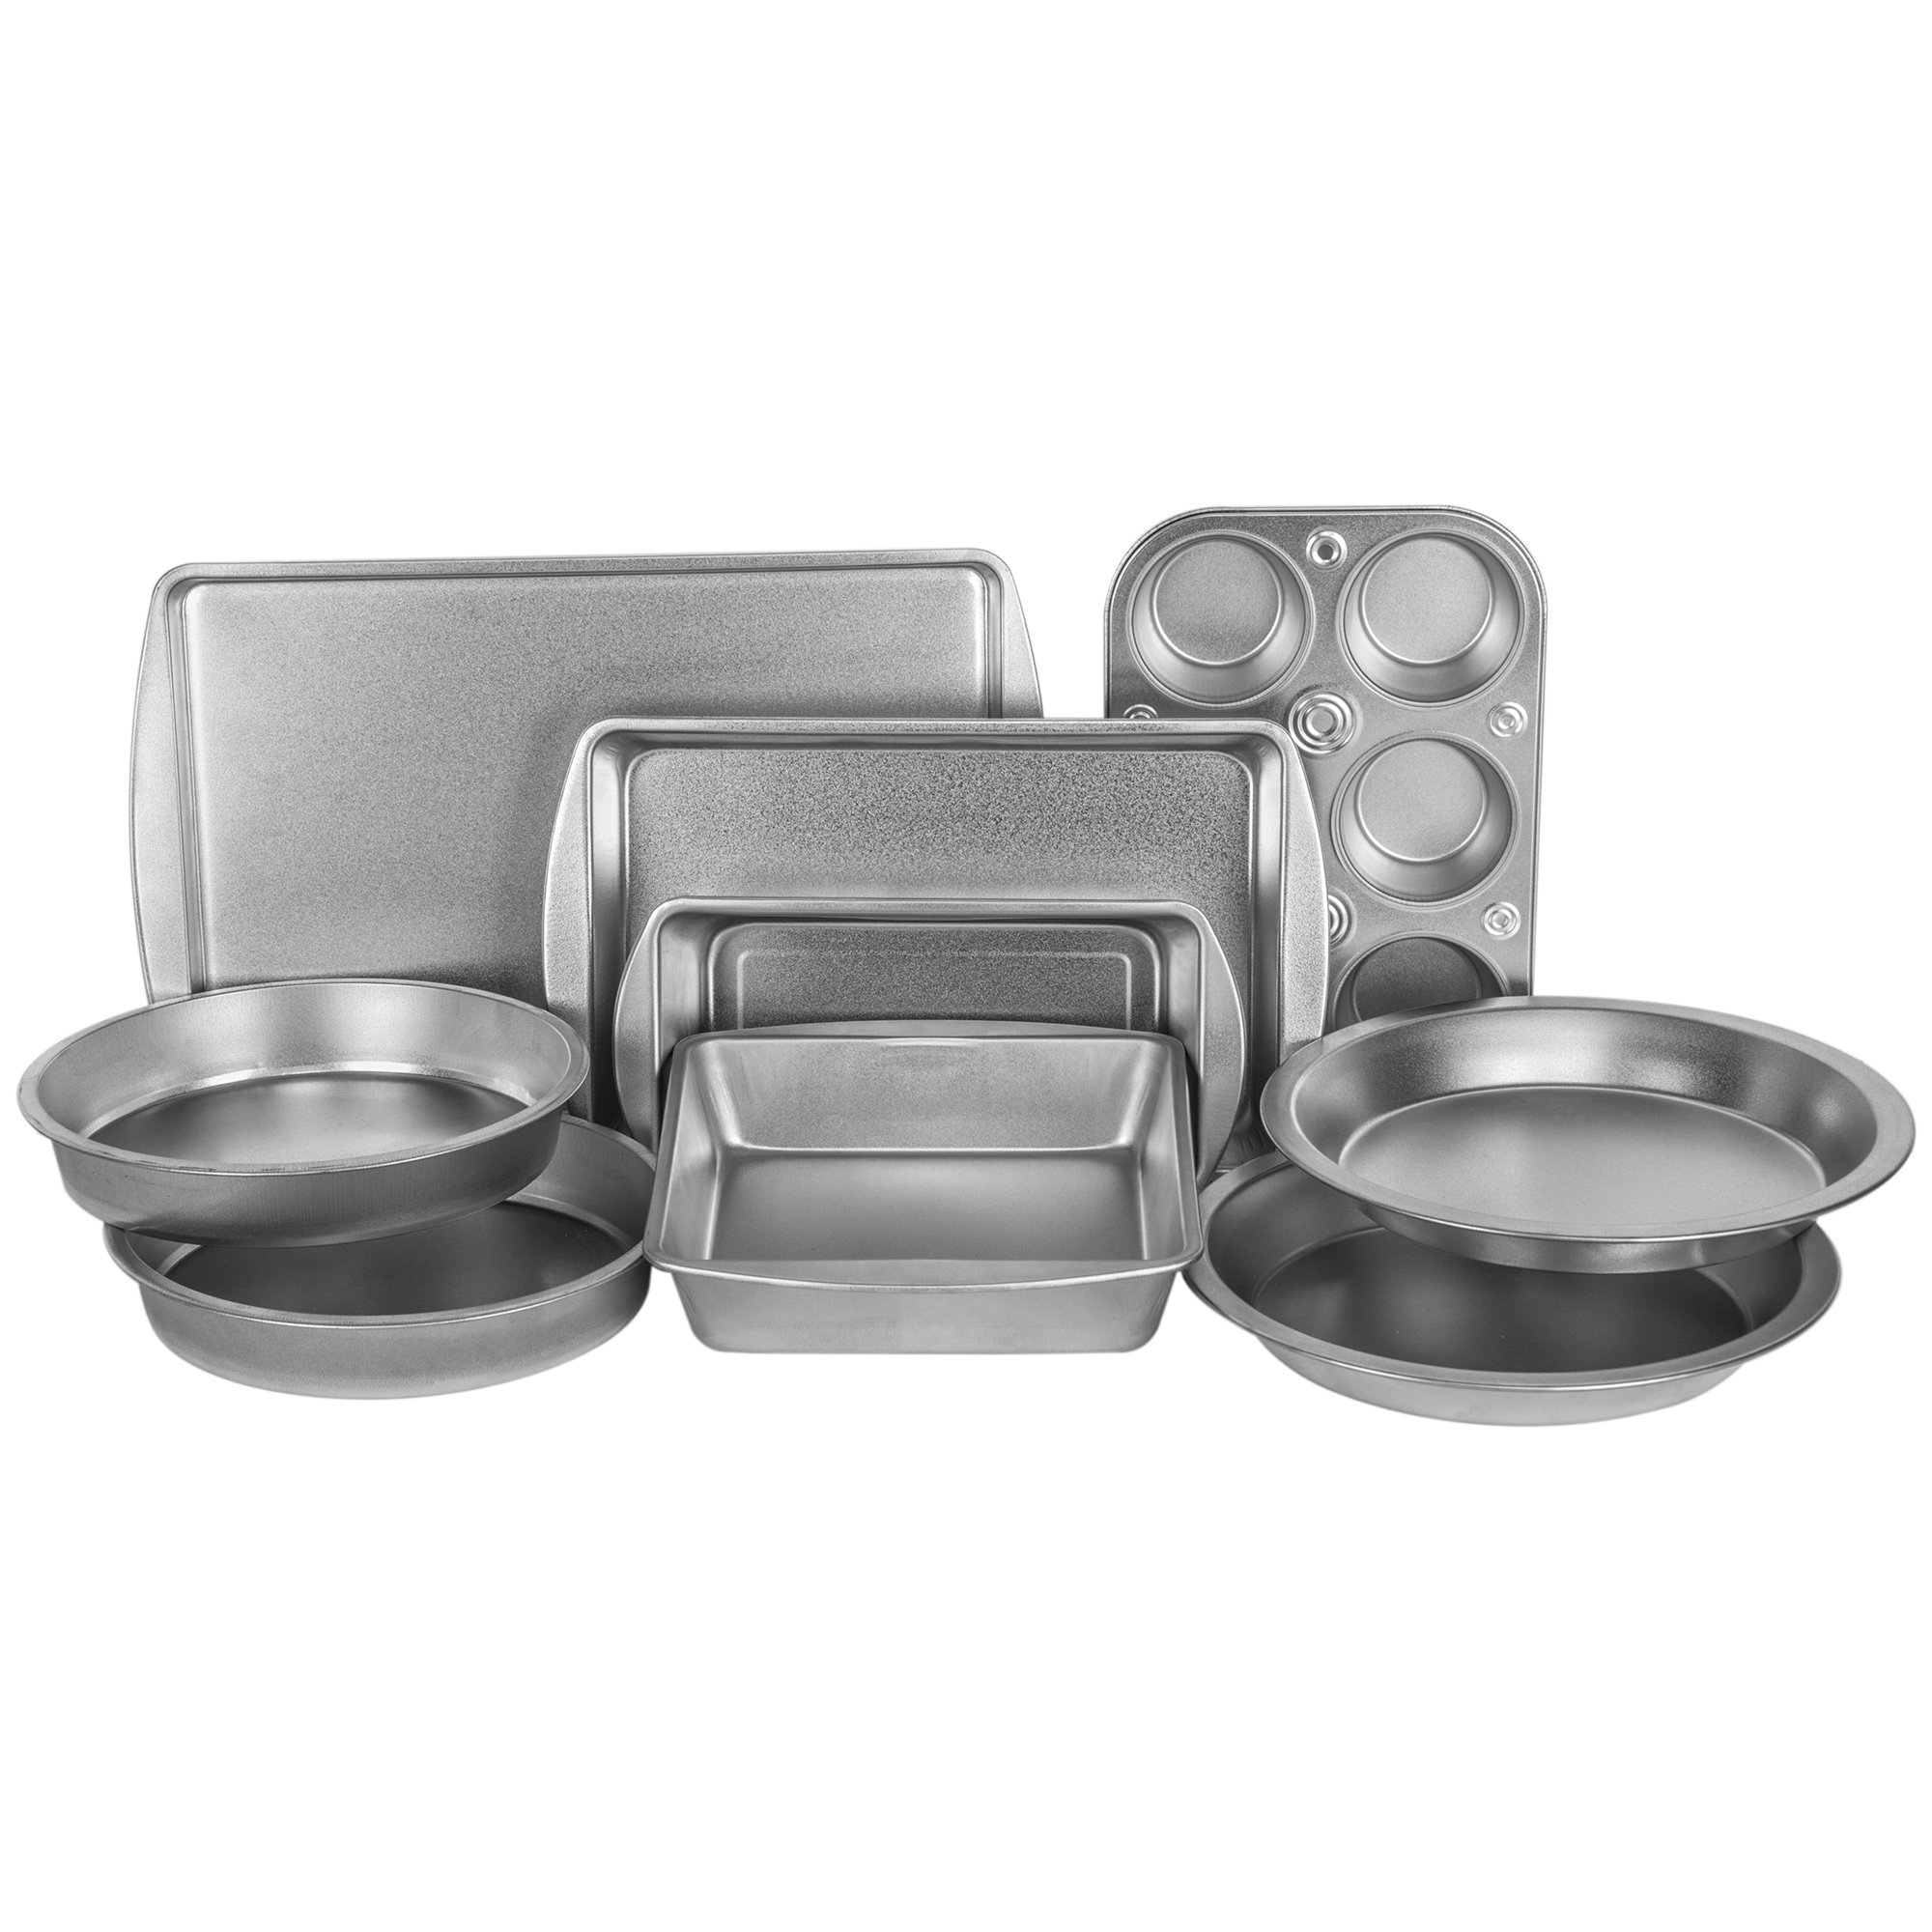 G & S Metal Products Company AZ999T Bakeware Set, Silver